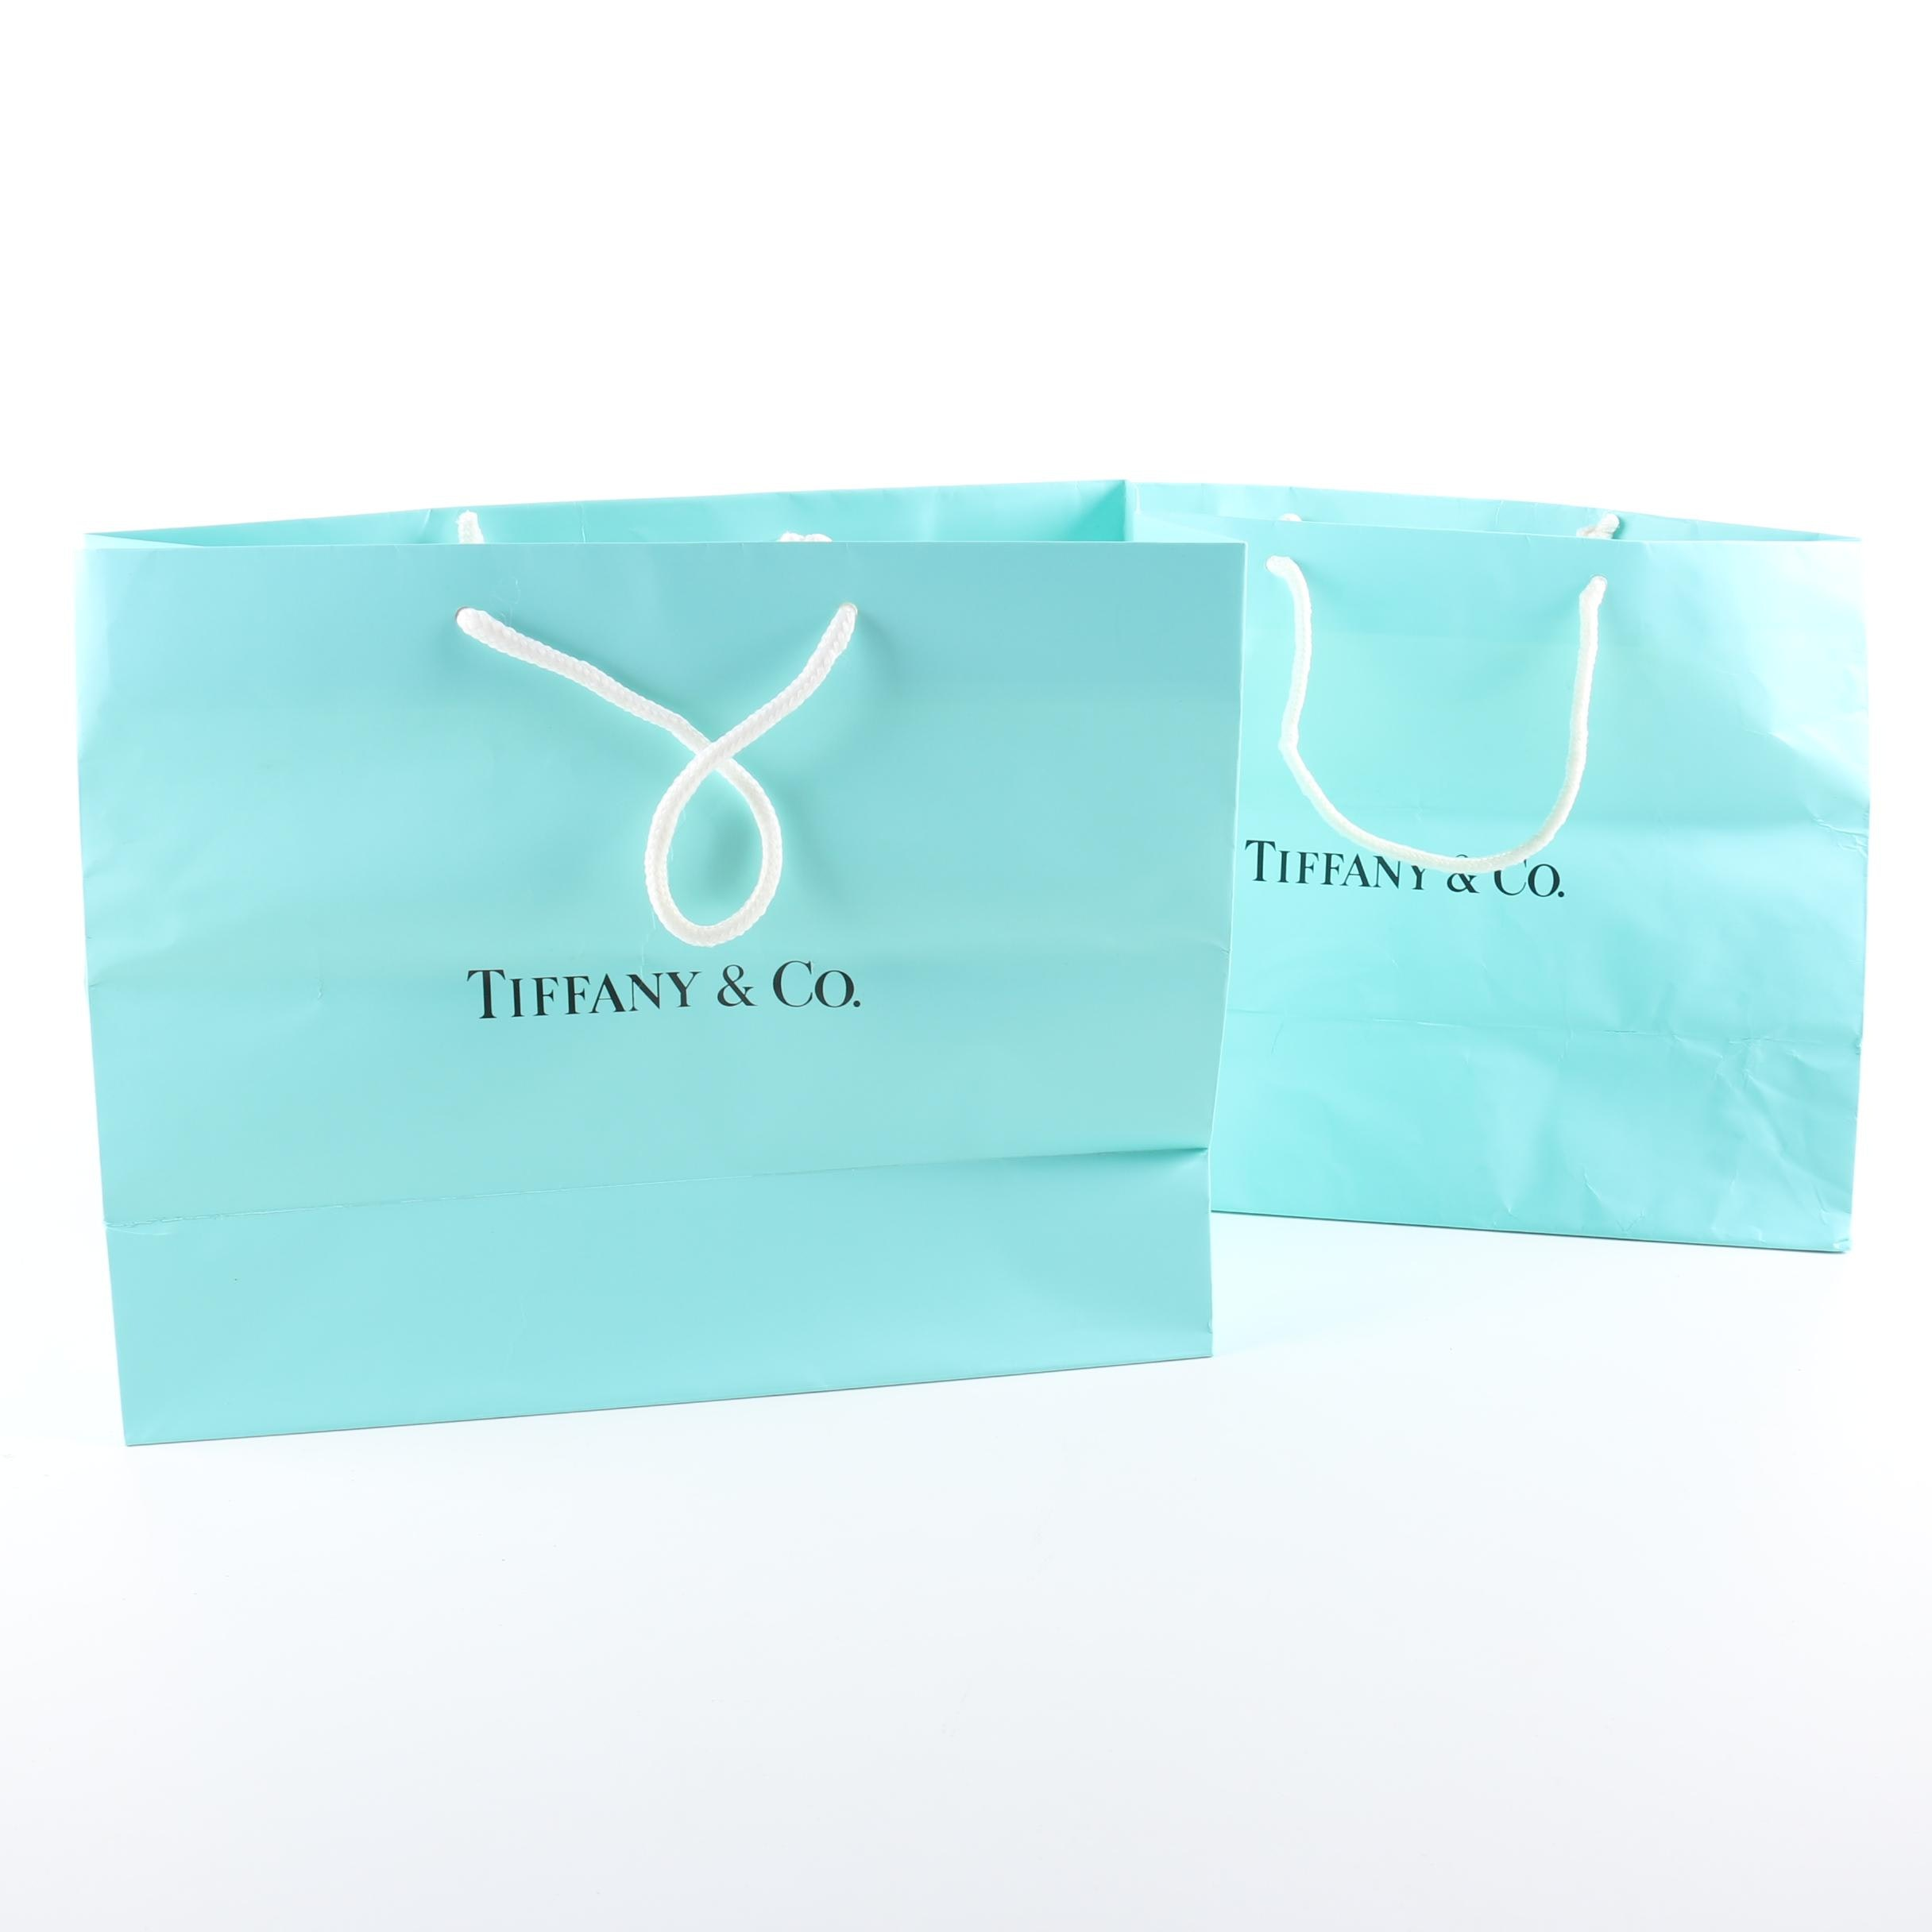 Tiffany & Co. Retail Bags